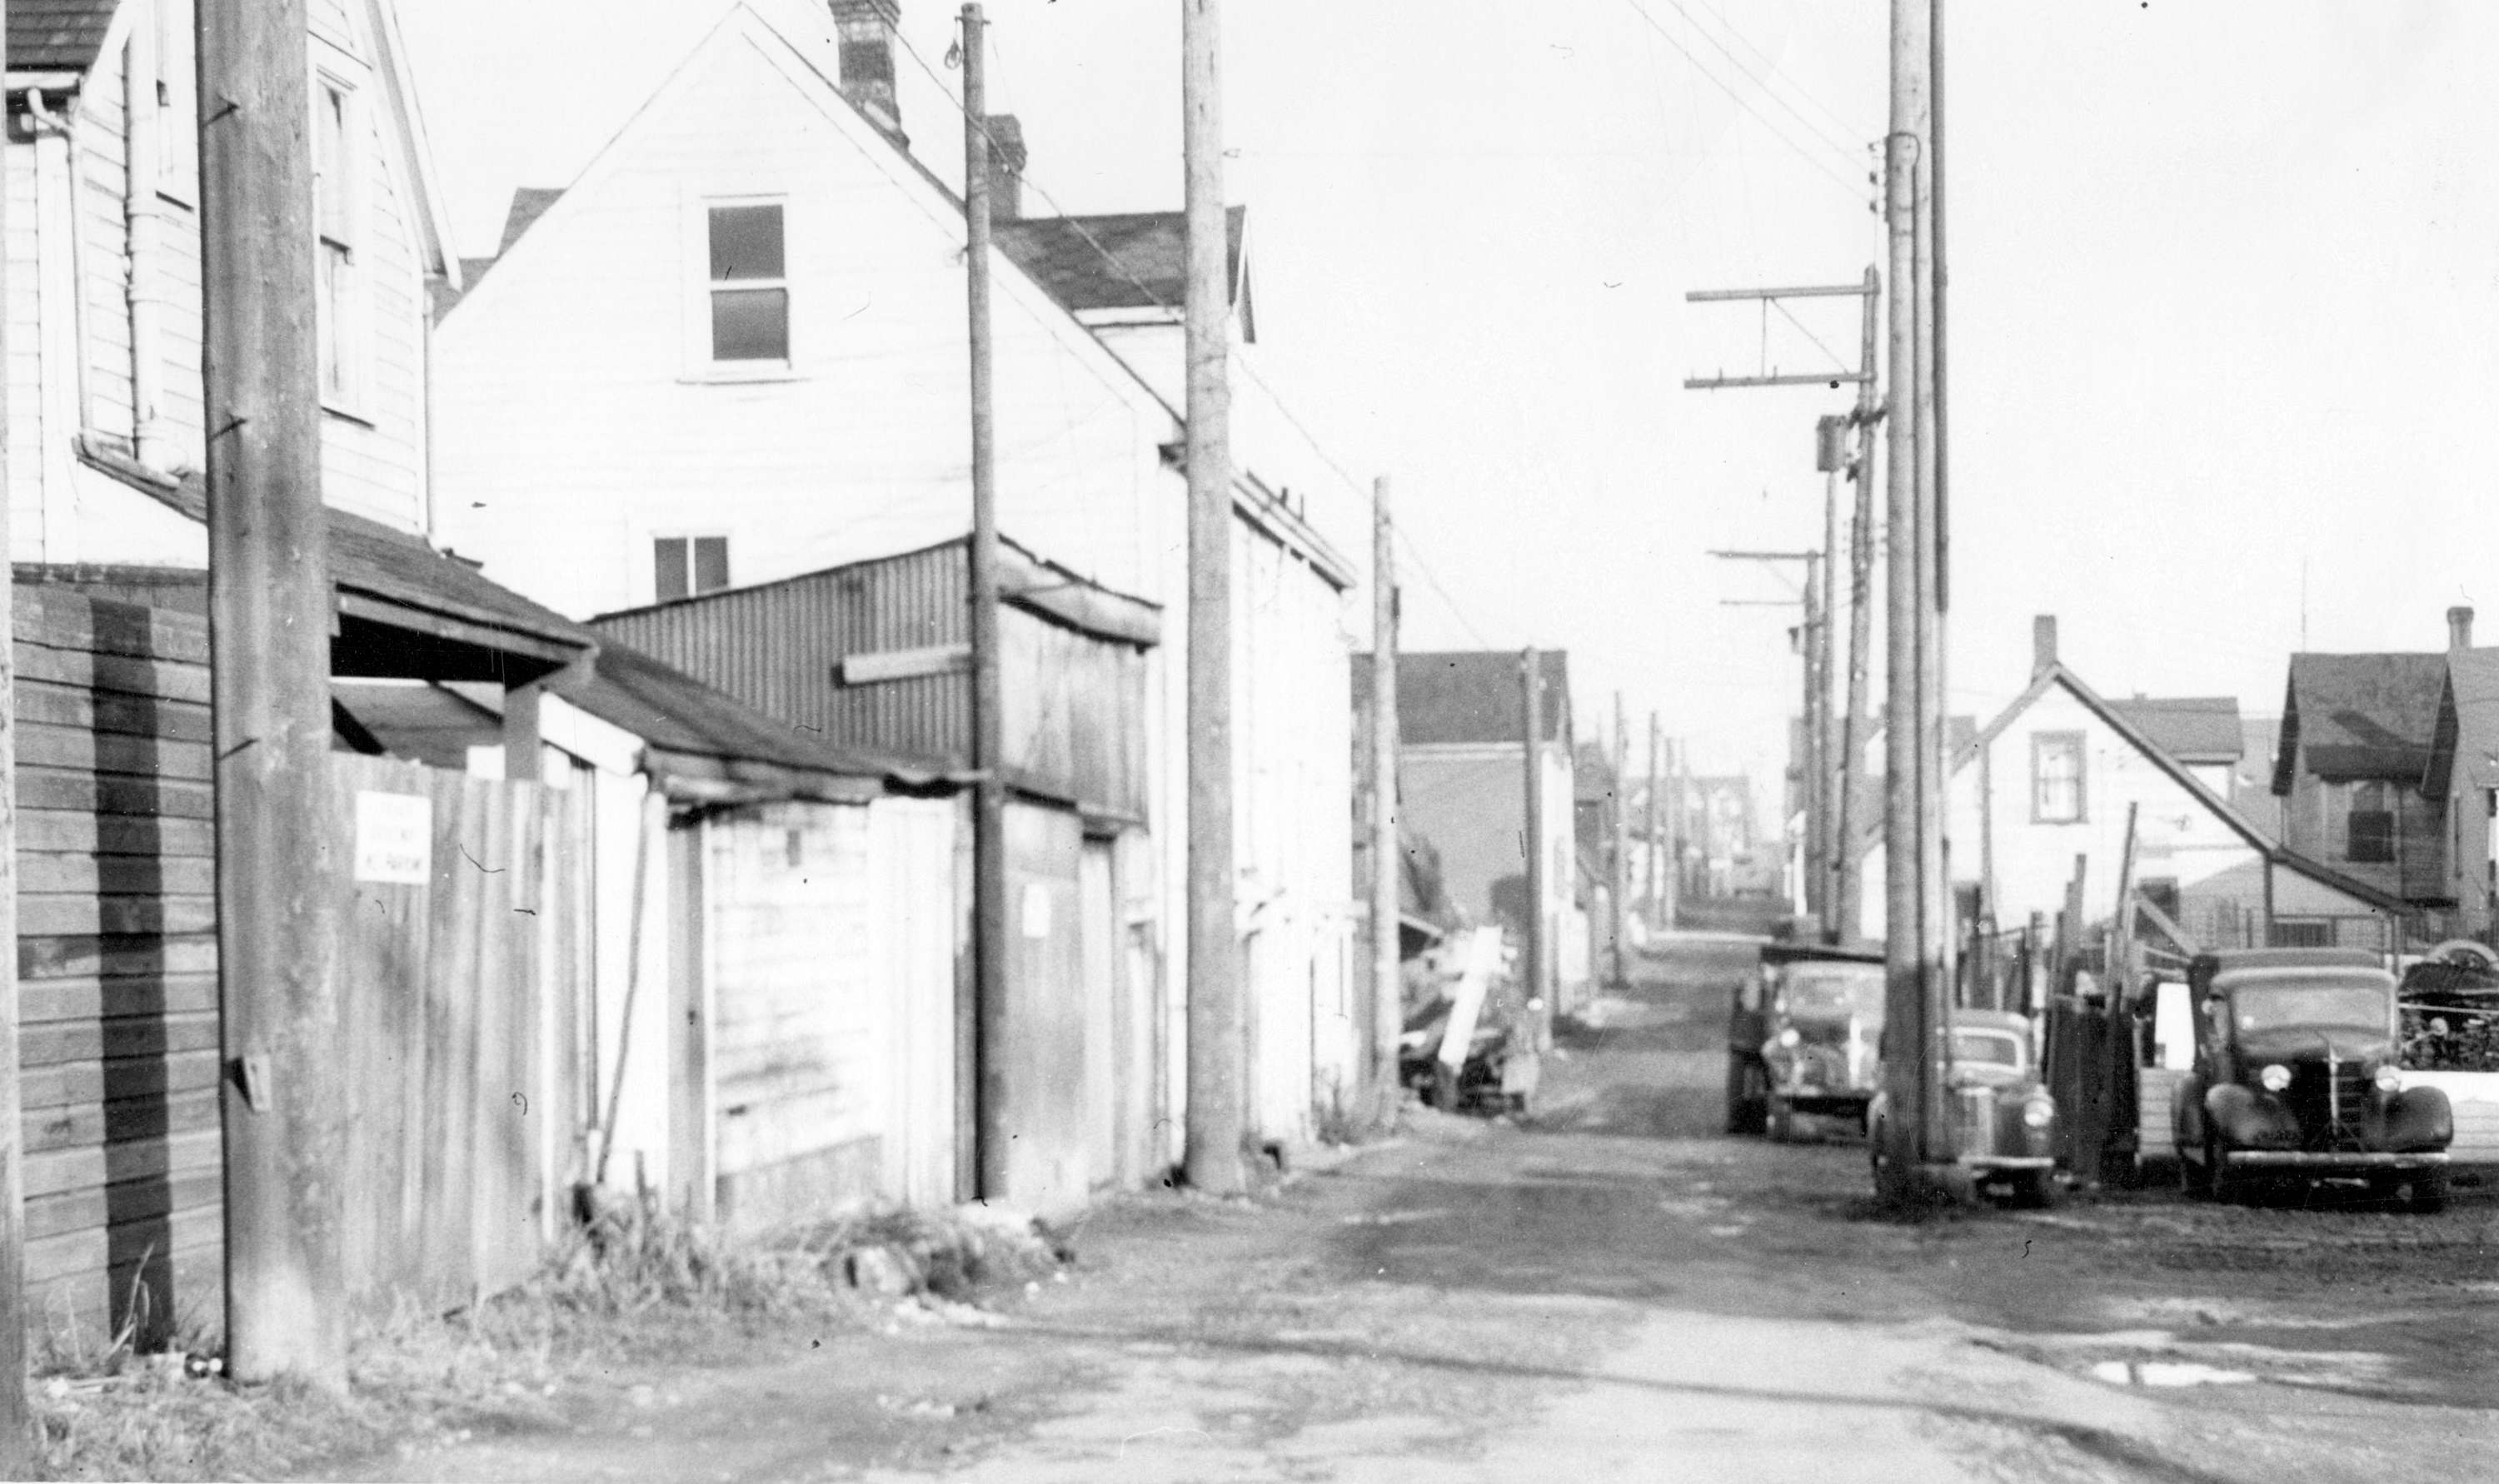 Section d'Hogan's Alley, avril 1958, Vancouver (Colombie-Britannique).